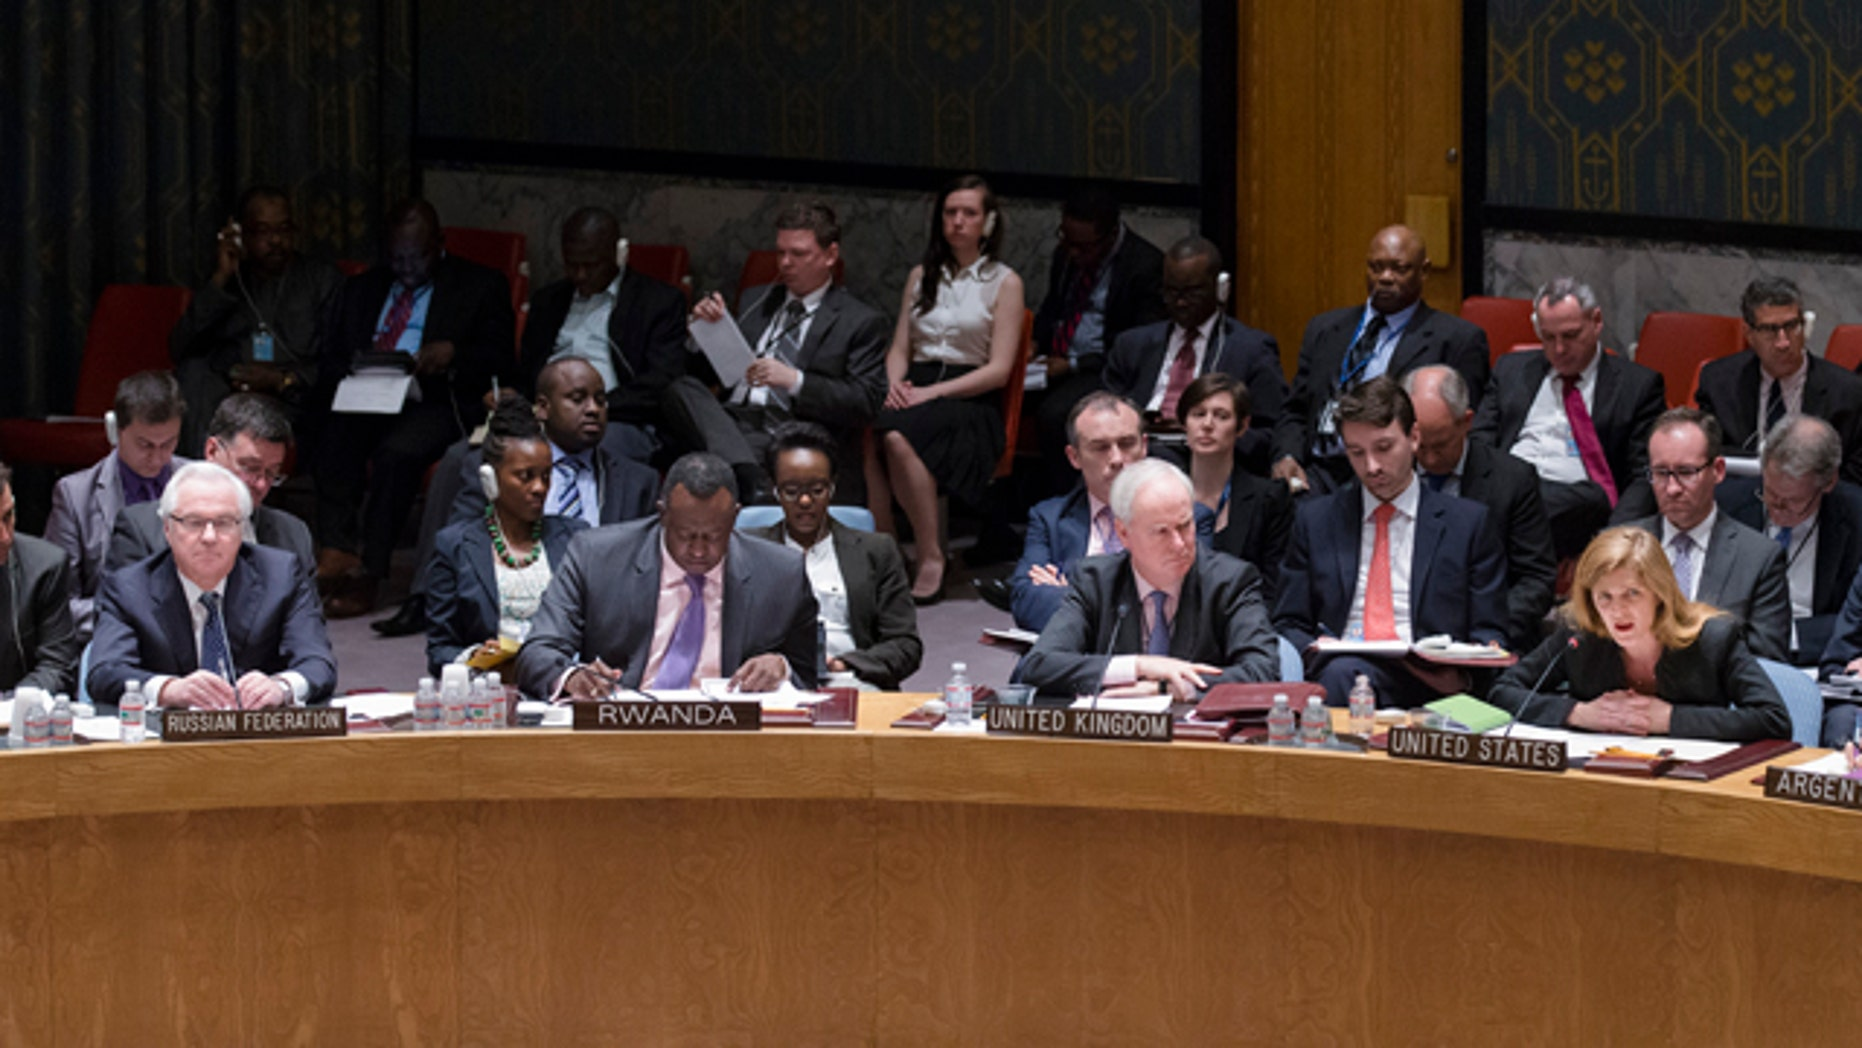 April 13, 2014: Samantha Power, the United States ambassador to the United Nations, right, speaks alongside Mark Lyall Grant, the United Kingdom's ambassador to the United Nations, center right, Eugene Richard Gasana, Rwanda's ambassador to the United Nations, center left, and Vitaly Churkin, the Russian Federation's ambassador to the United Nations, left, during an U.N. Security Council emergency meeting called at Russia's request to discuss the growing crisis in Ukraine.  (AP Photo/John Minchillo)